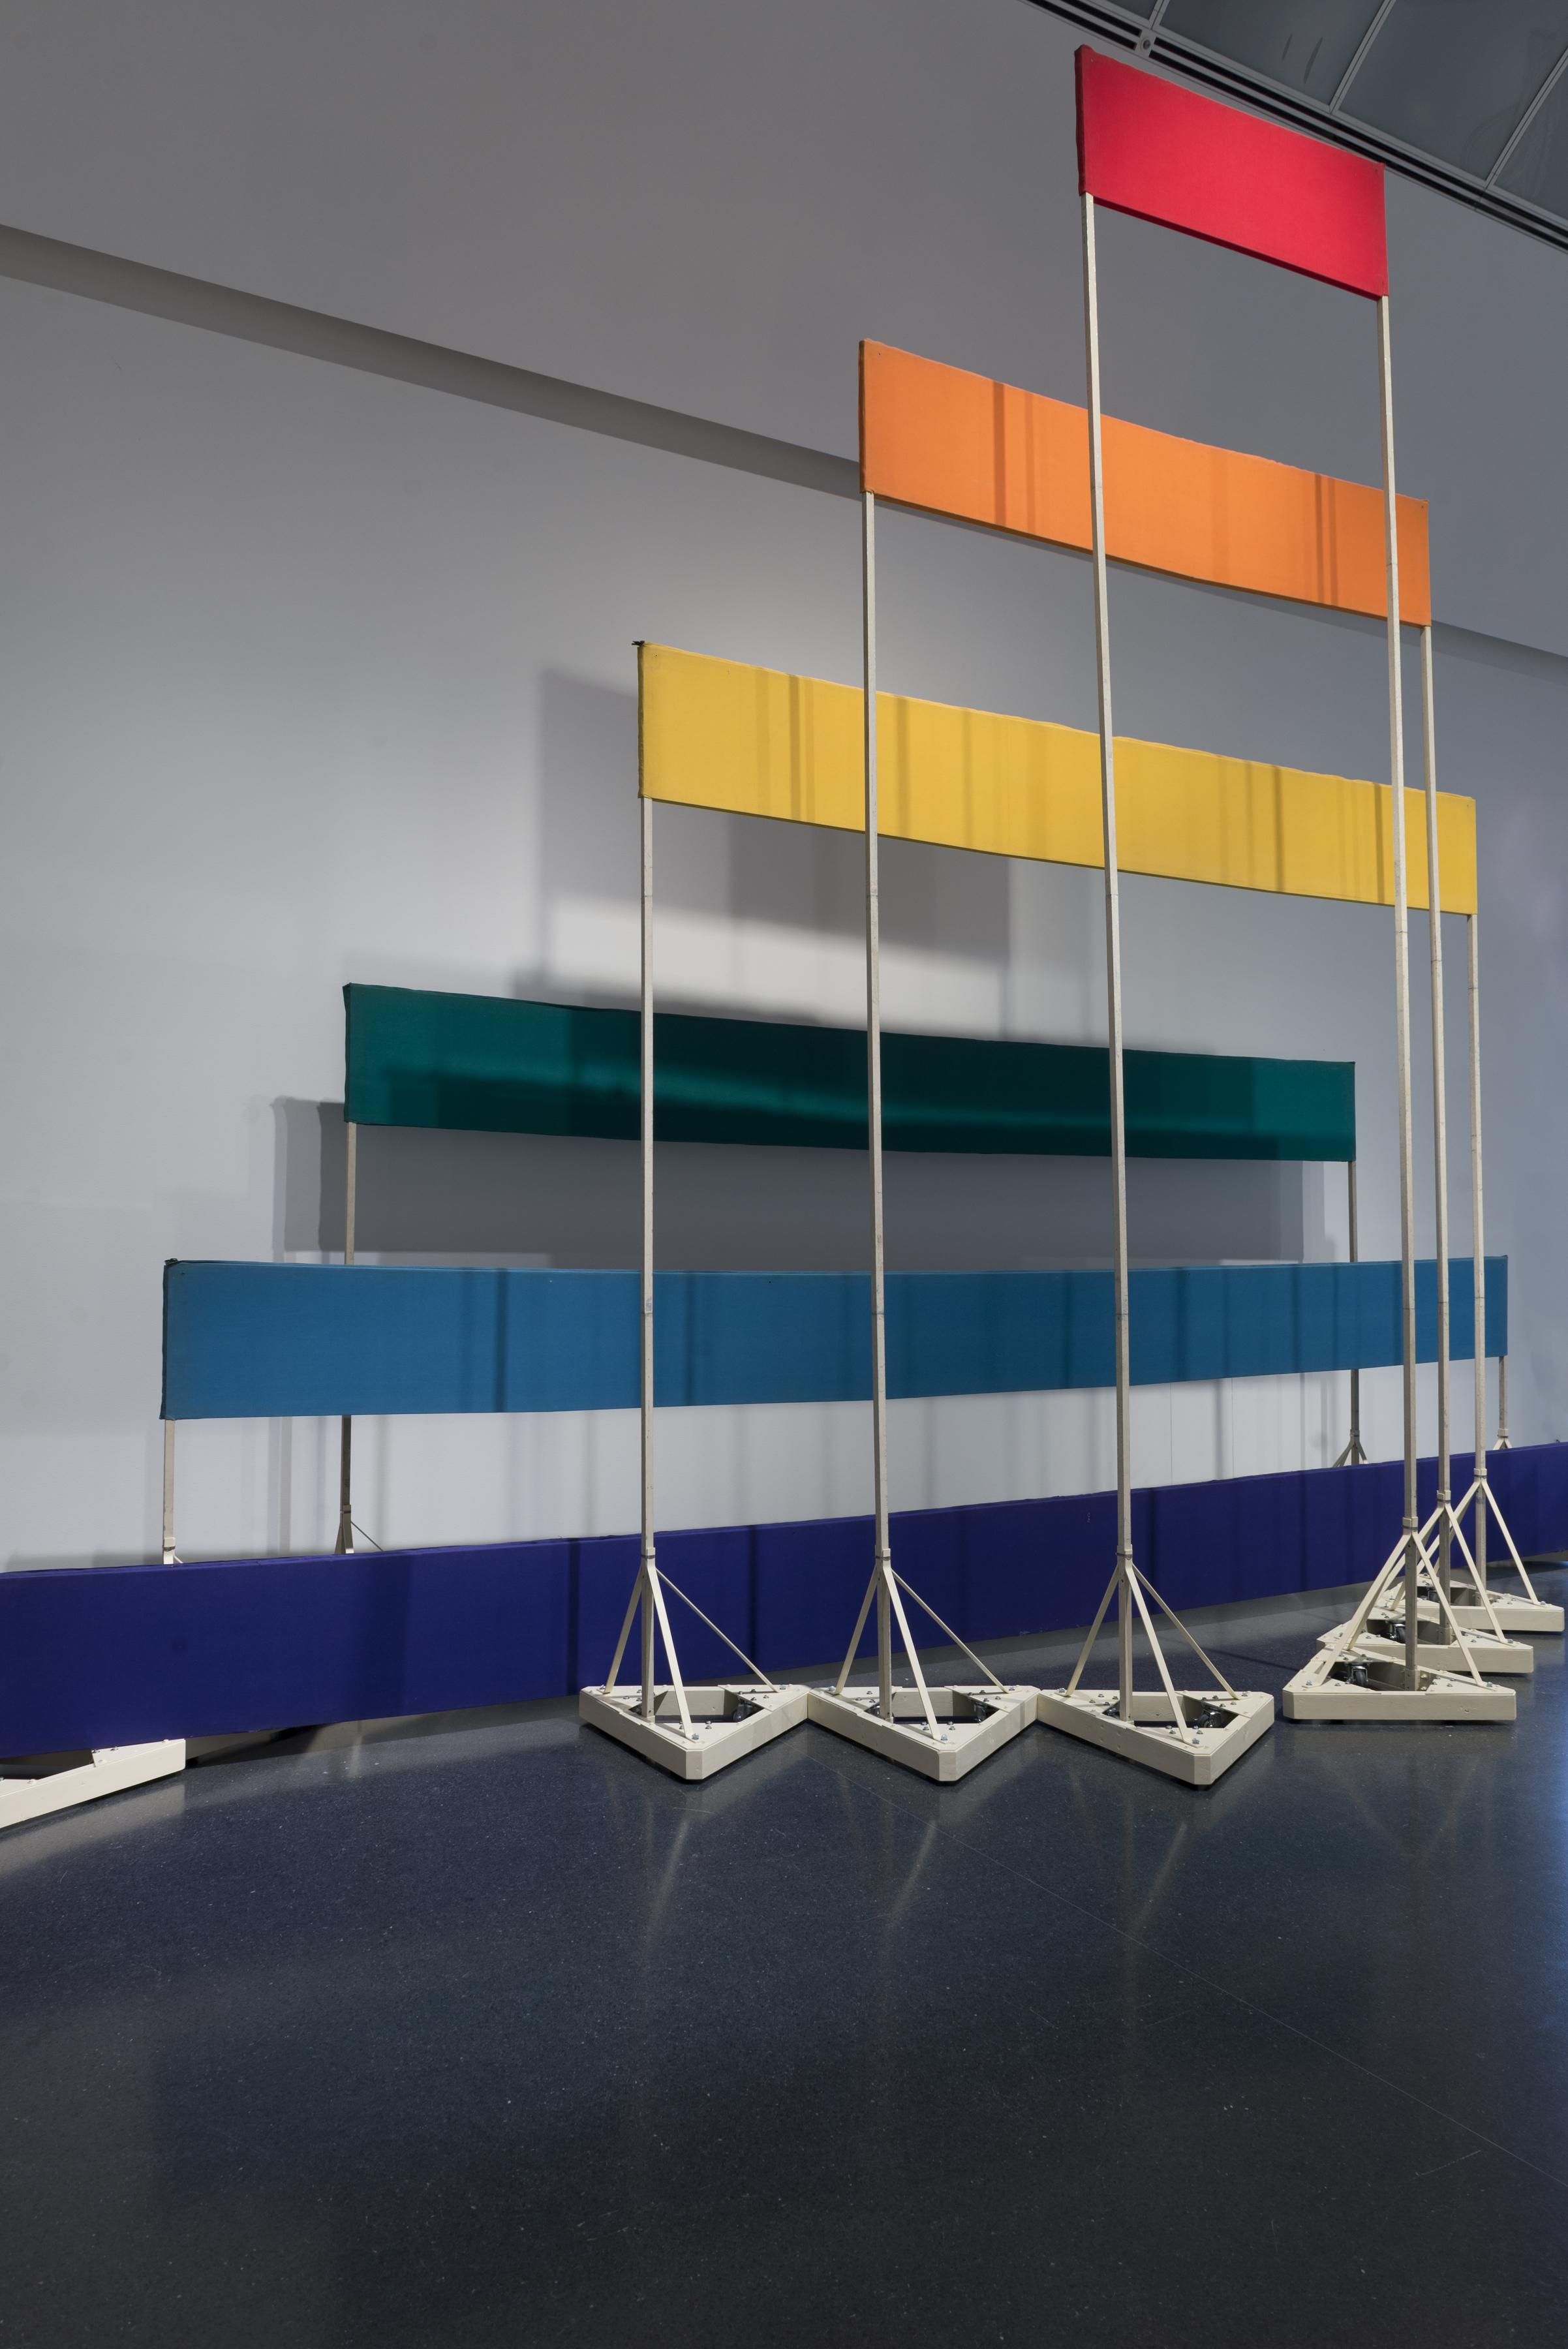 Six boards, each a different color and length, are supported by stands of increasing height and decreasing width.